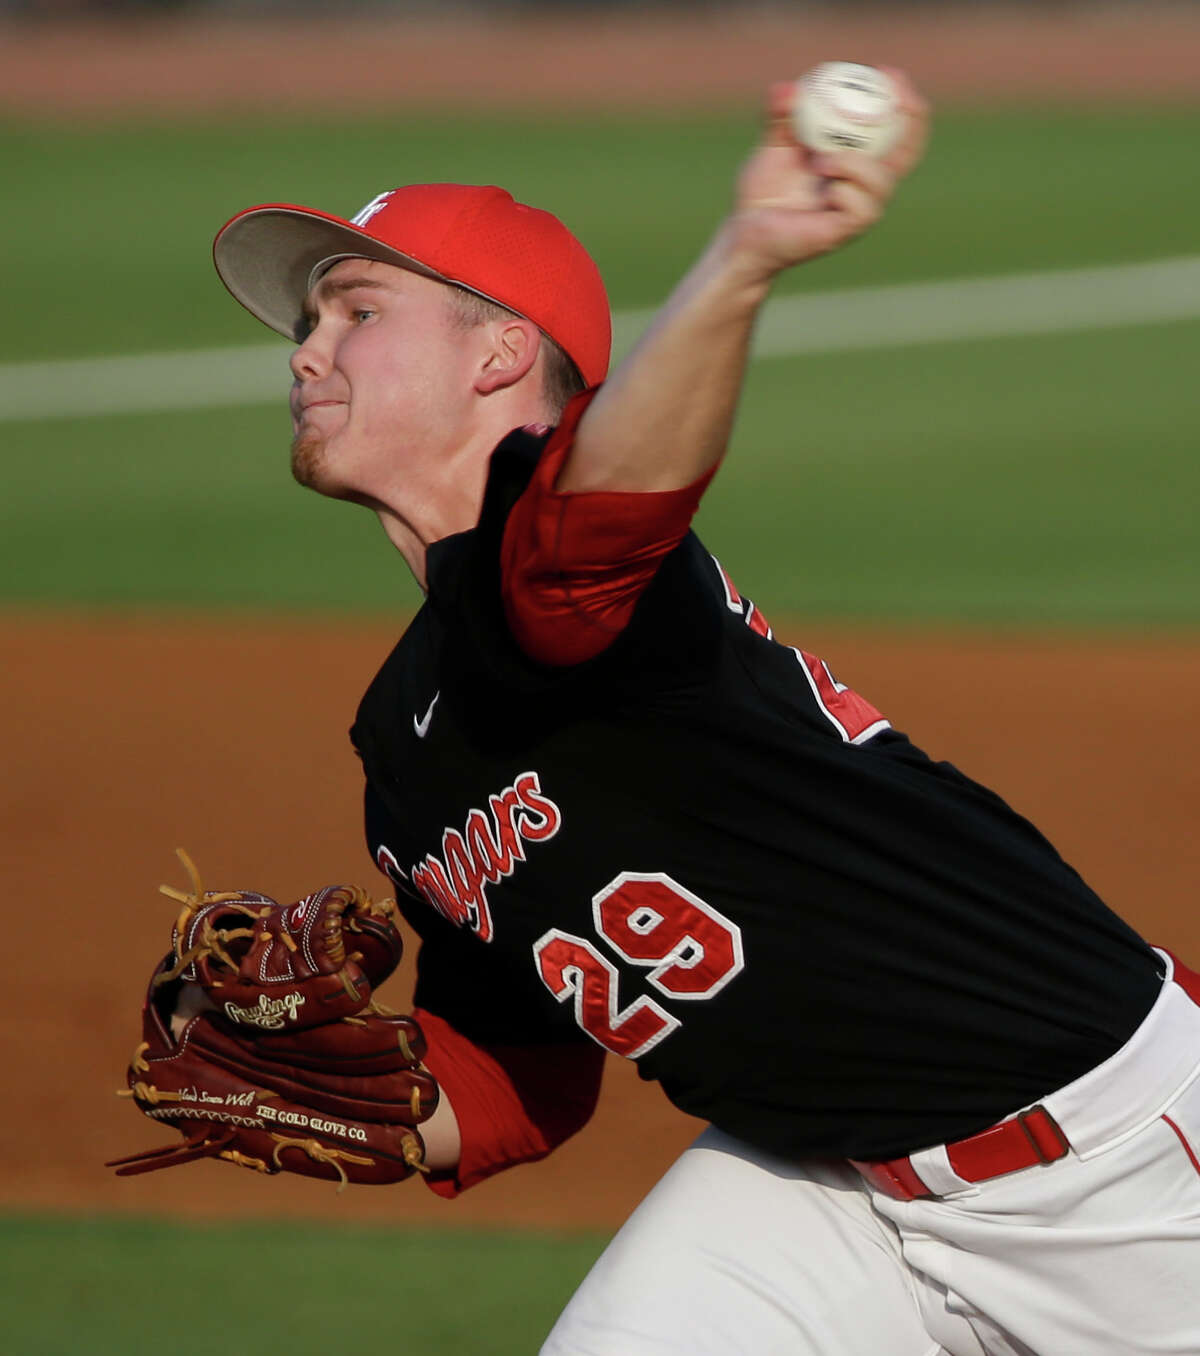 University of Houston Trey Cumbie pitches against Rice University during game in Reckling Park at Rice Tuesday, May 10, 2016, in Houston.